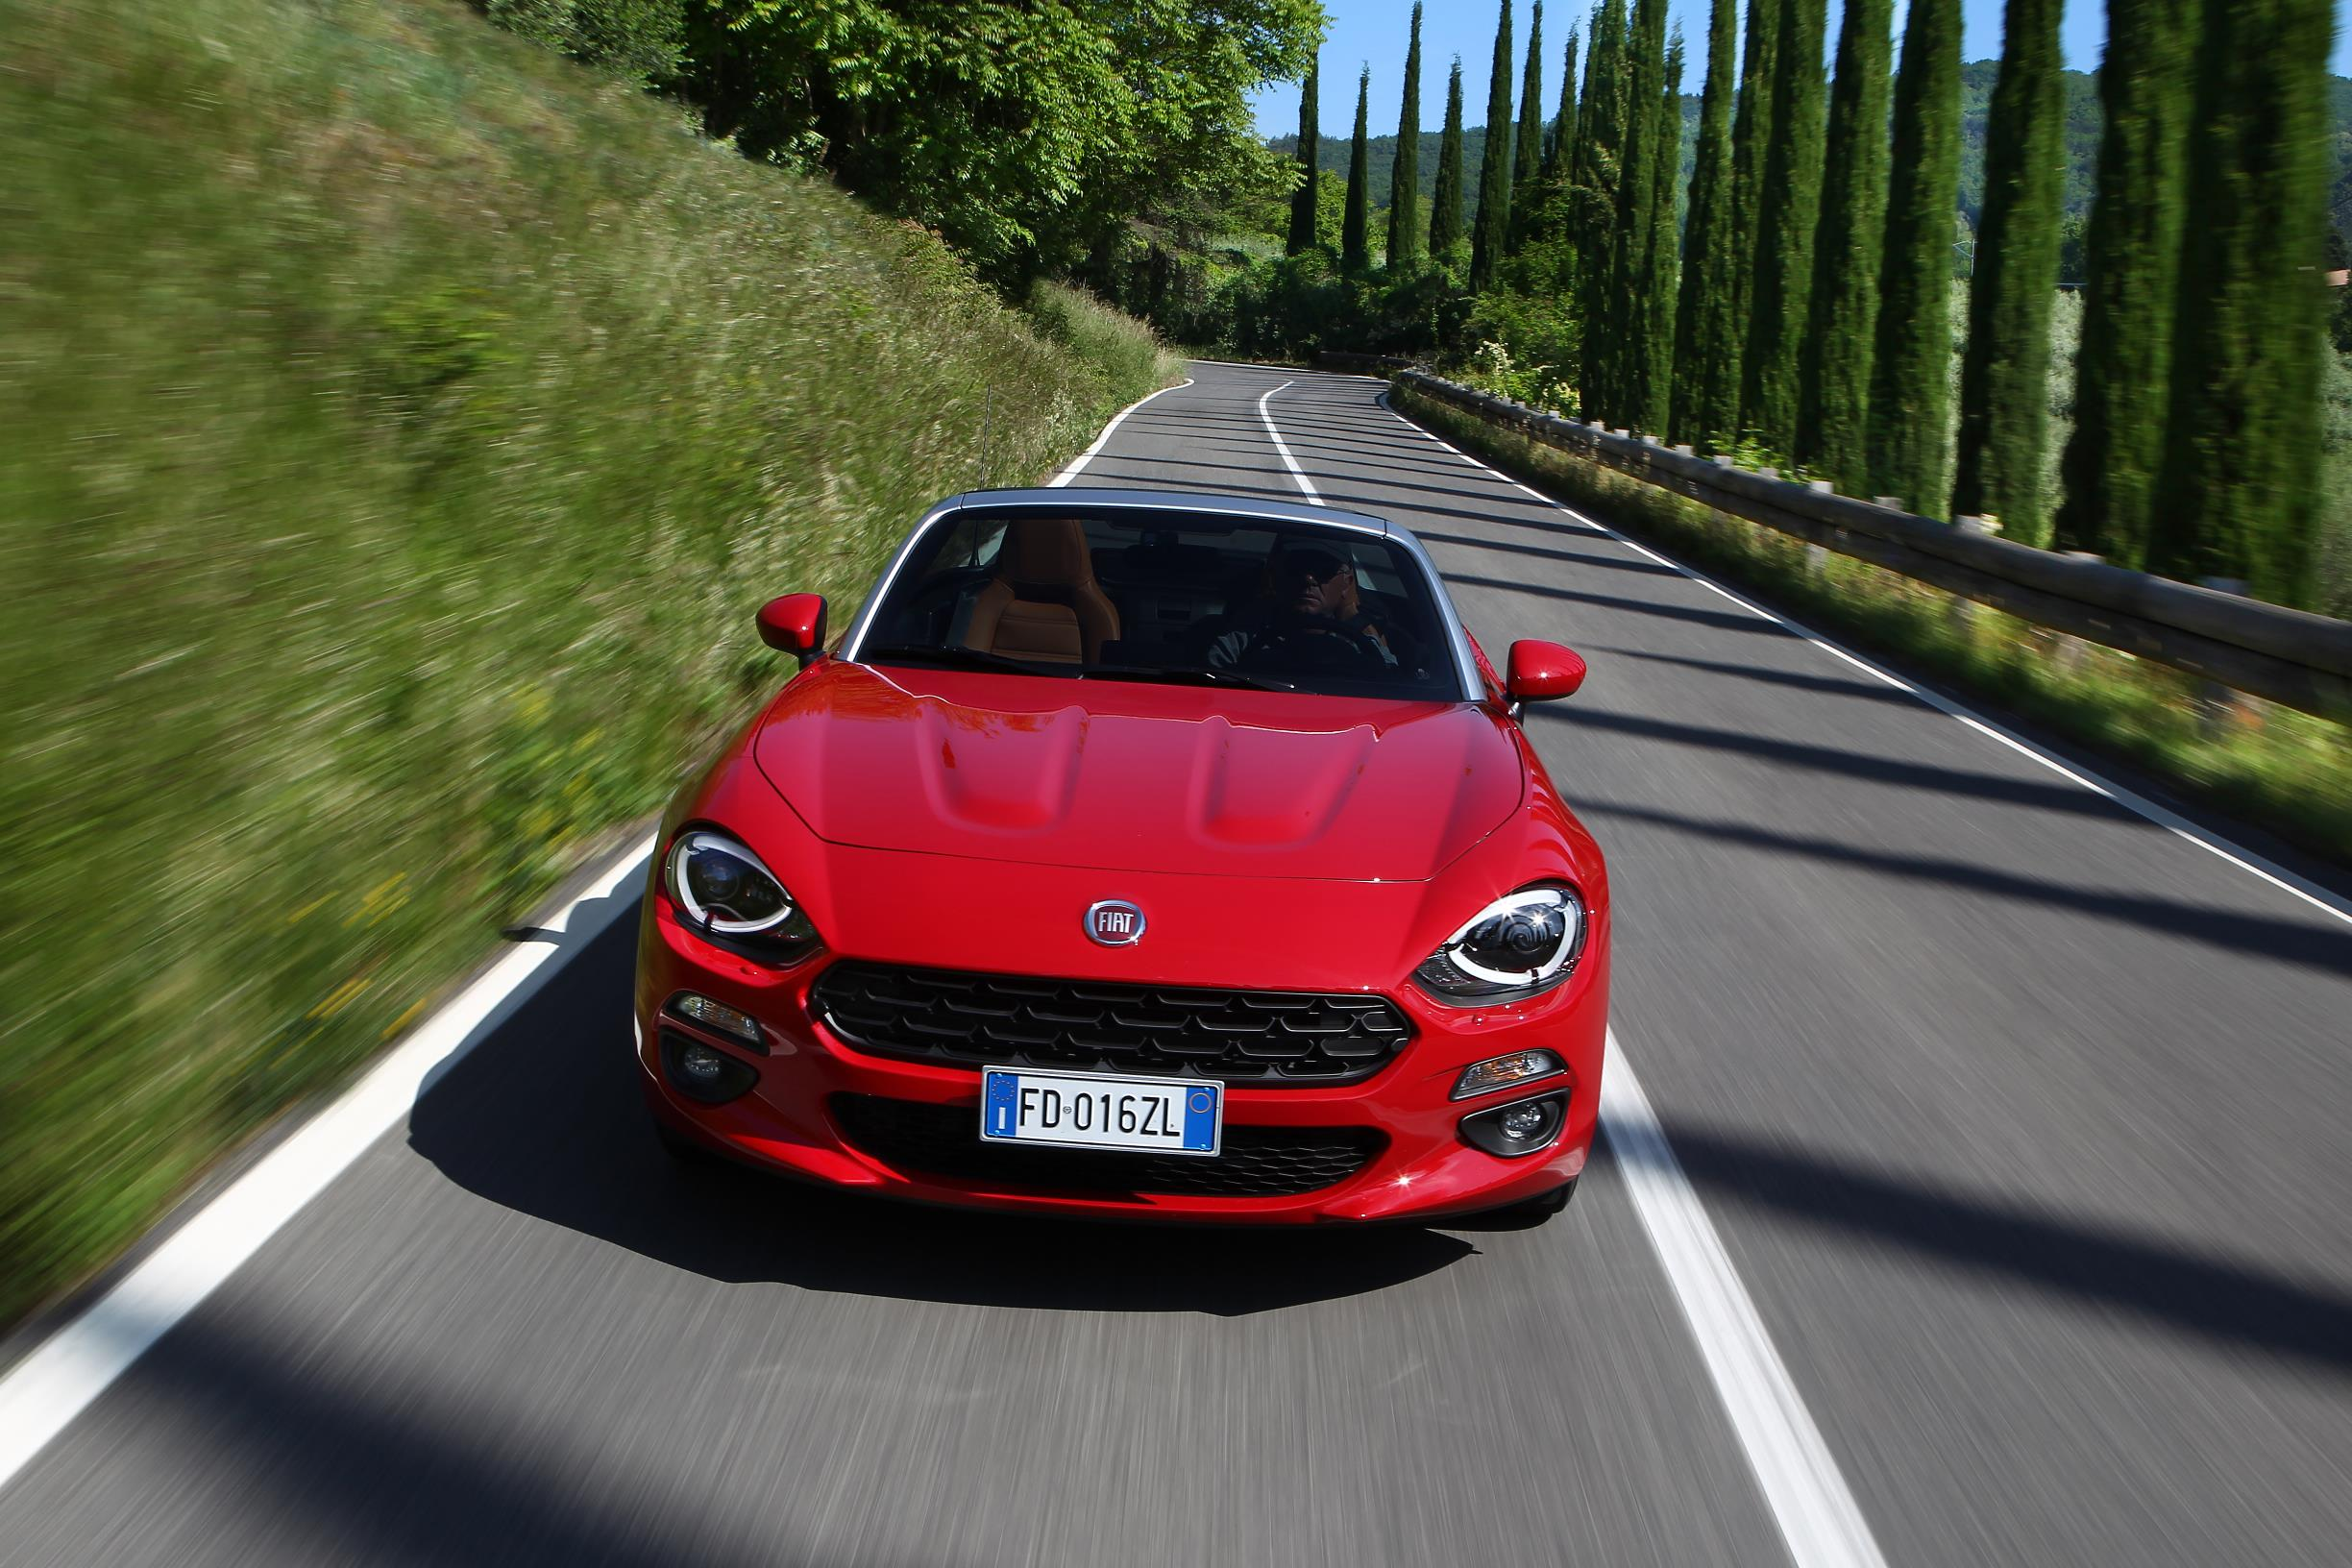 Fiat 124 Spider >> Fiat 124 Spider Named European Gay Car of the Year 2017 ...